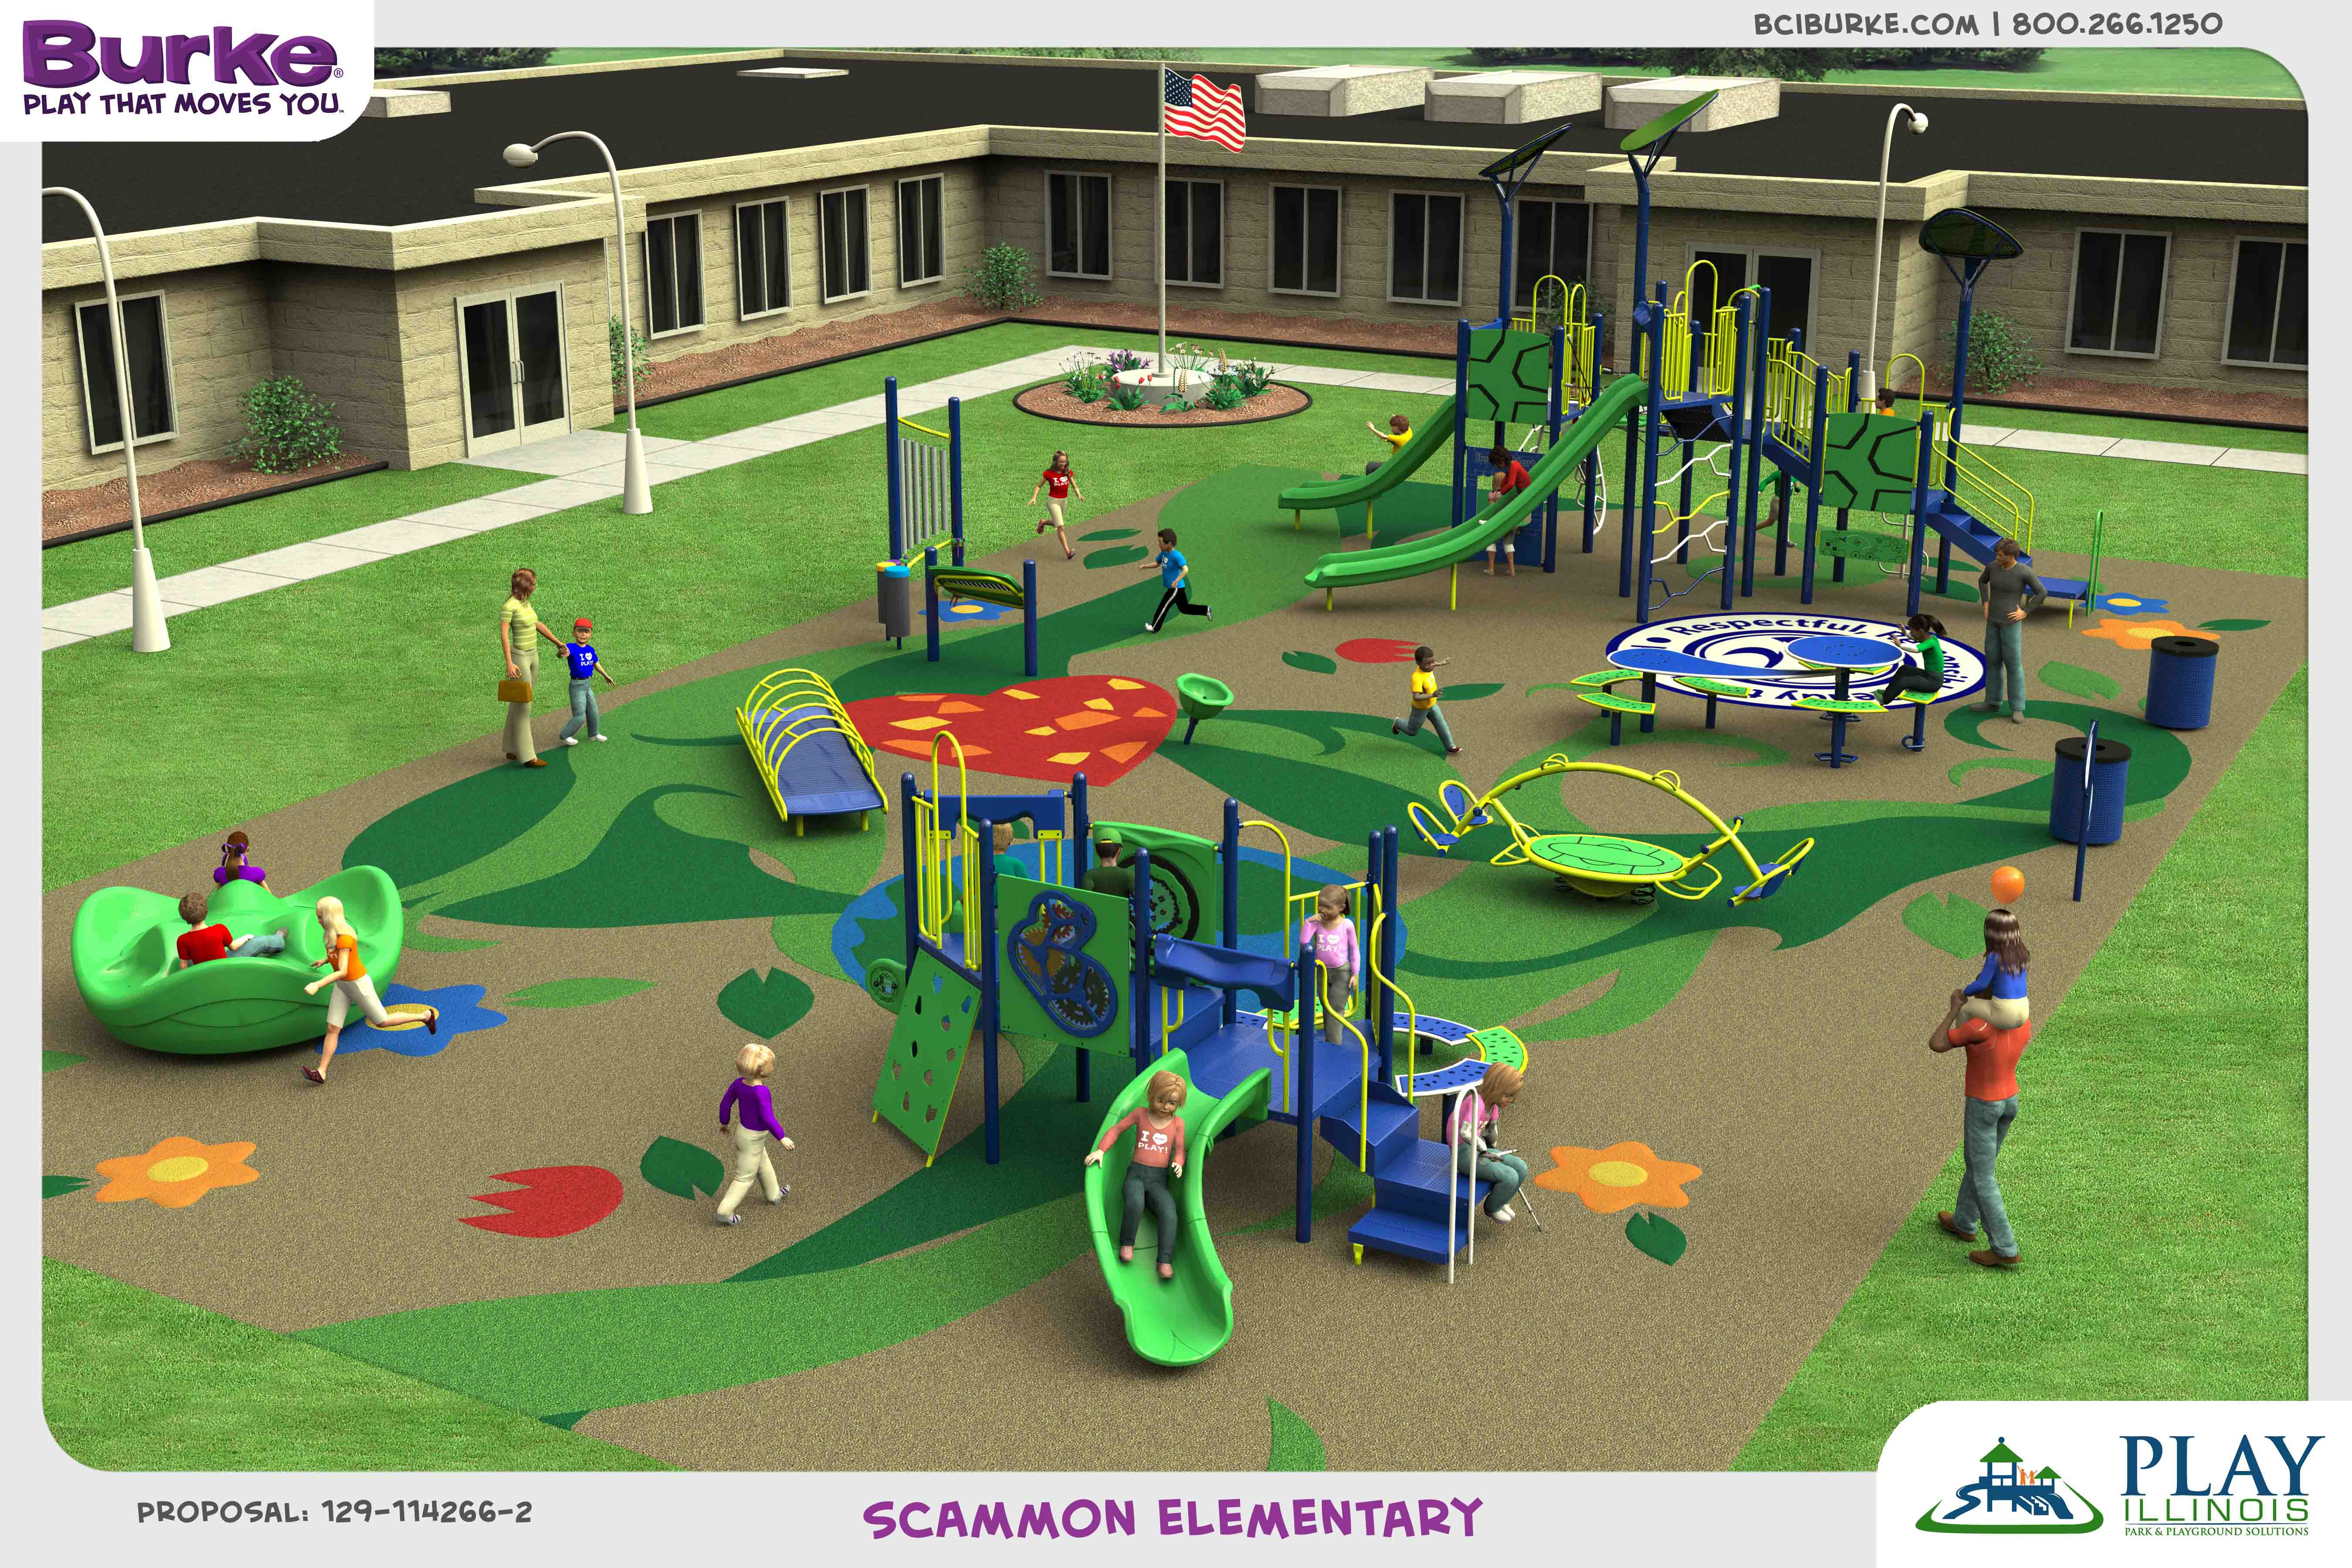 129-114266-2A-copy dream build play experience accessible playgrounds